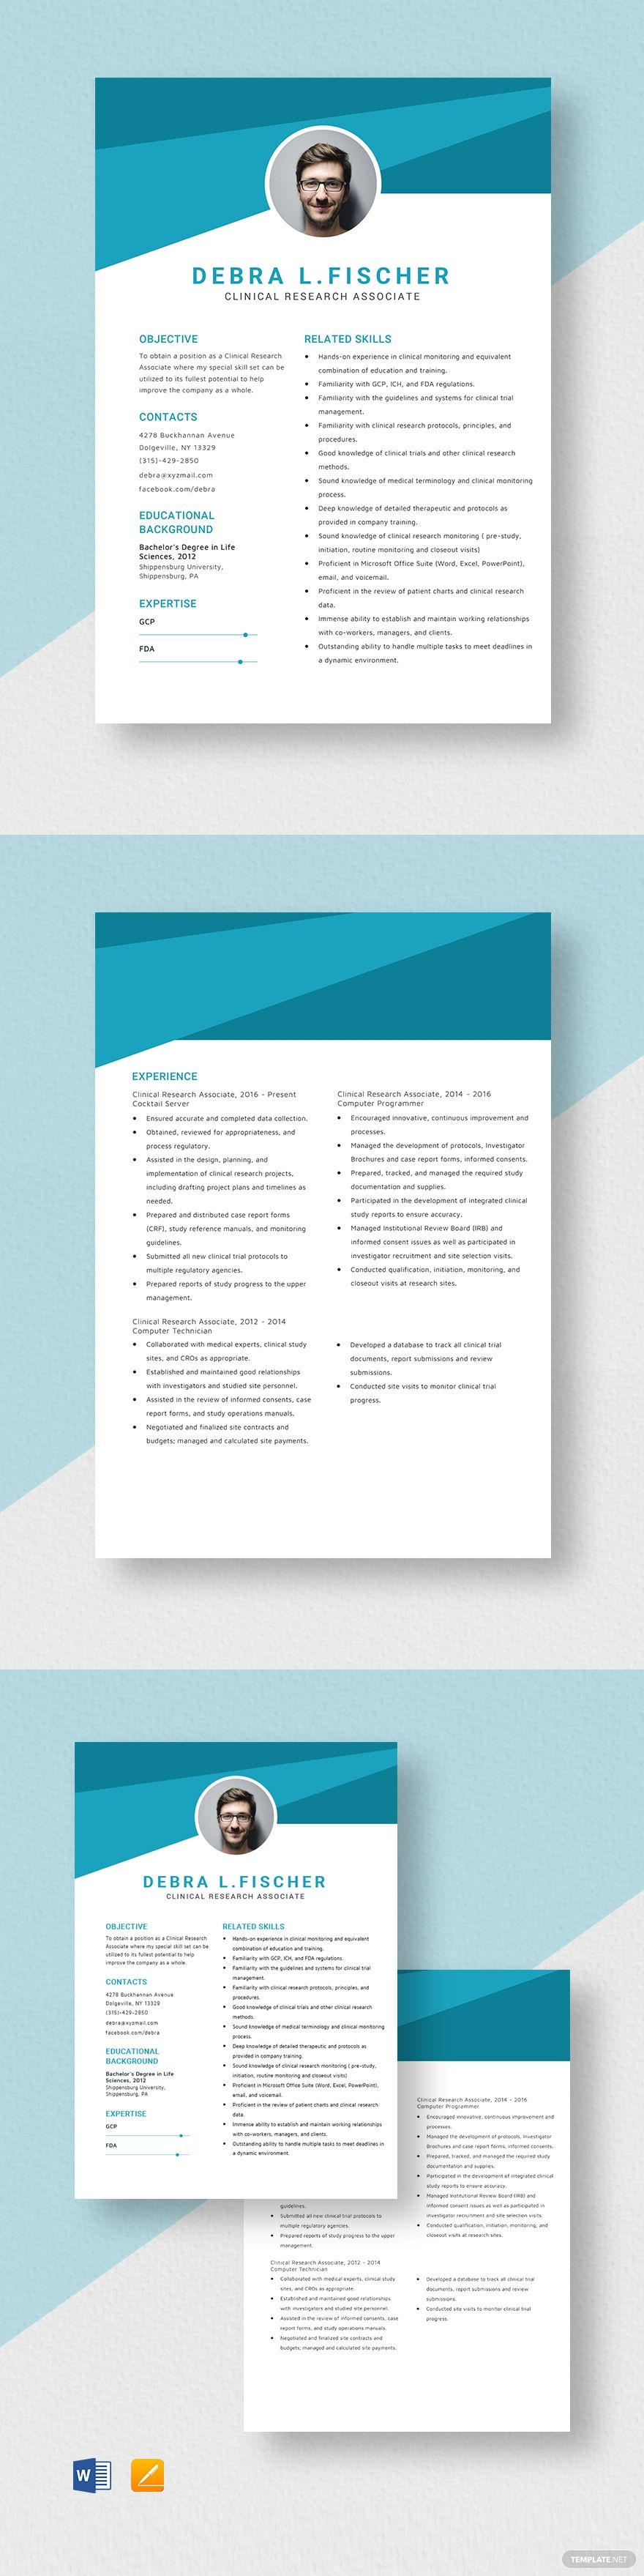 Clinical research associate resume template ad paid